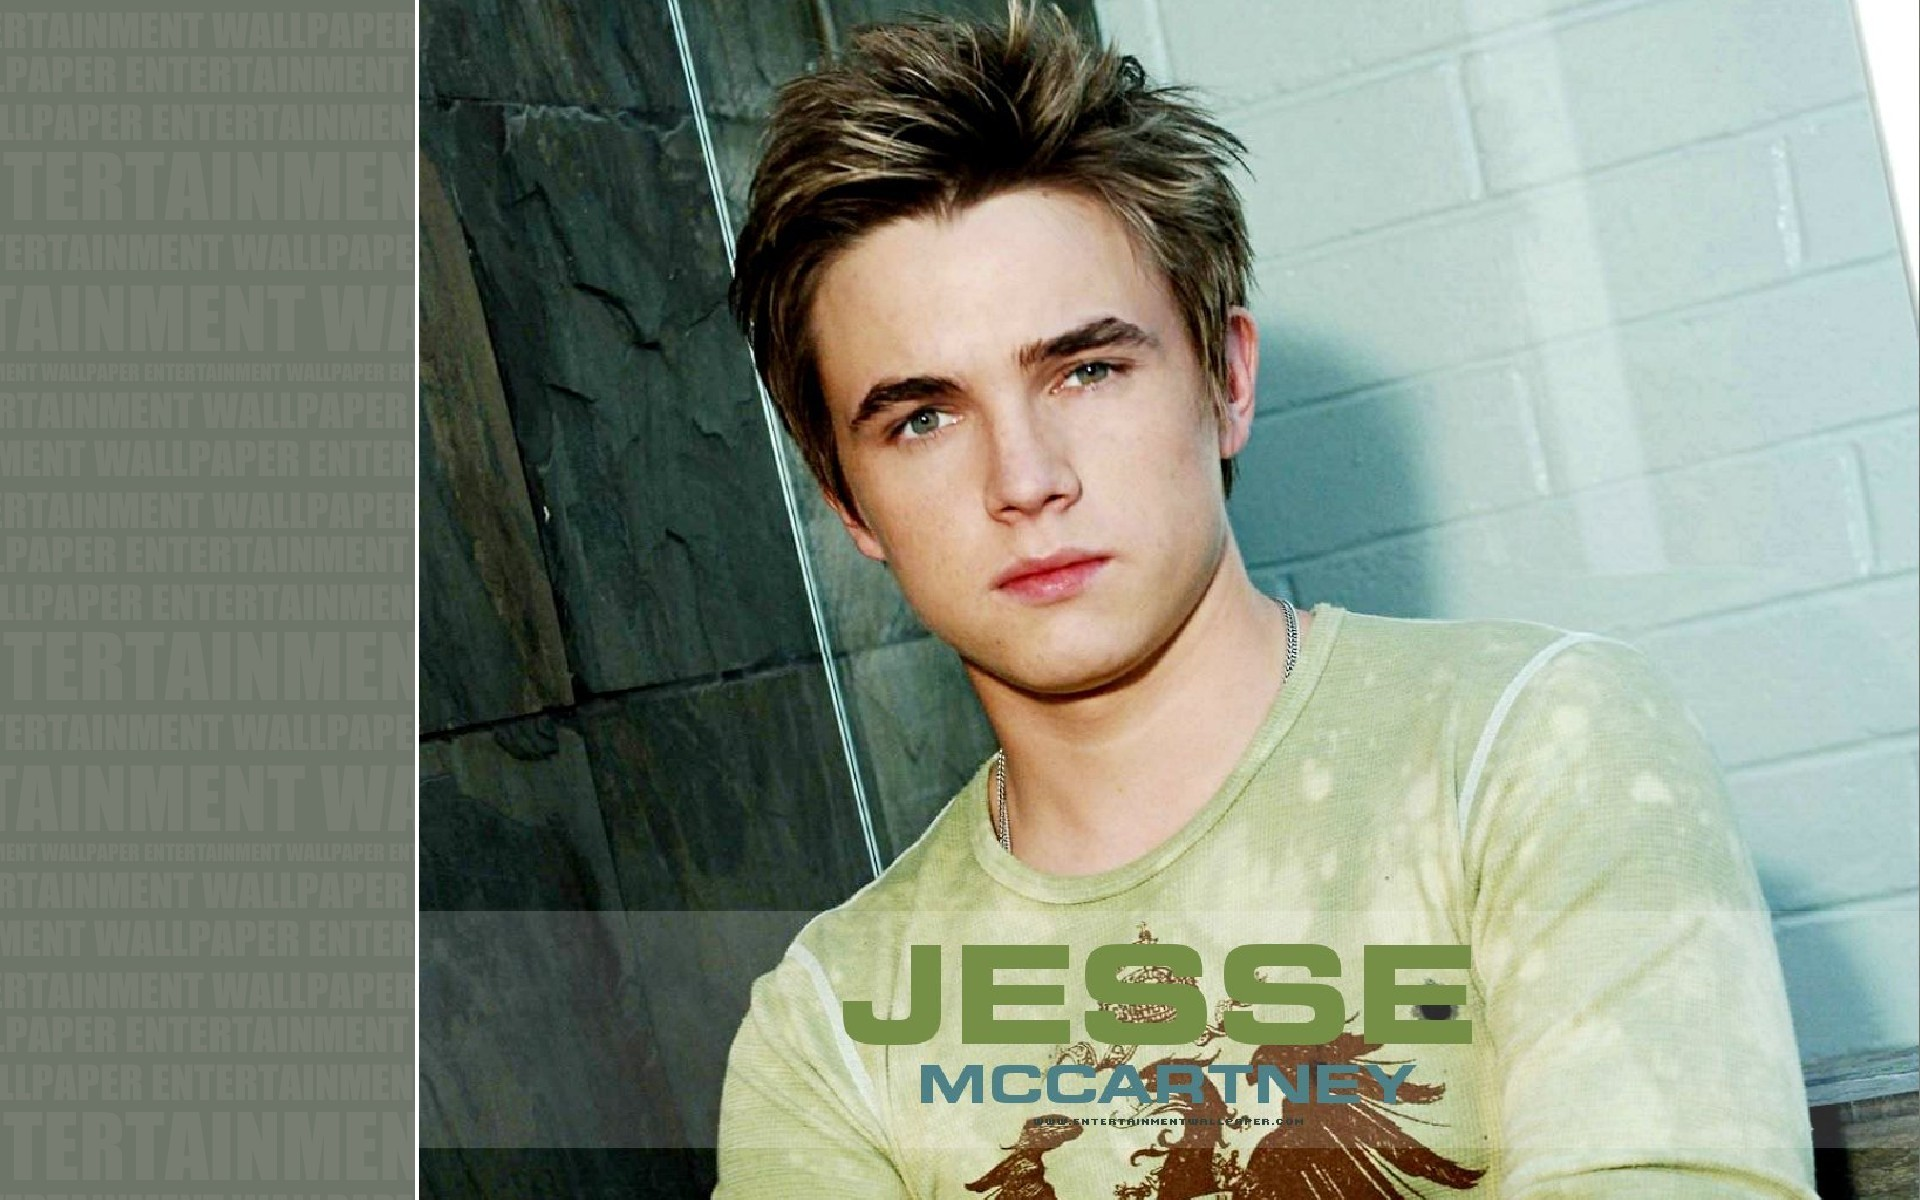 1920x1200 Pics Photos - Download Jesse Mccartney Ringtones Jesse .